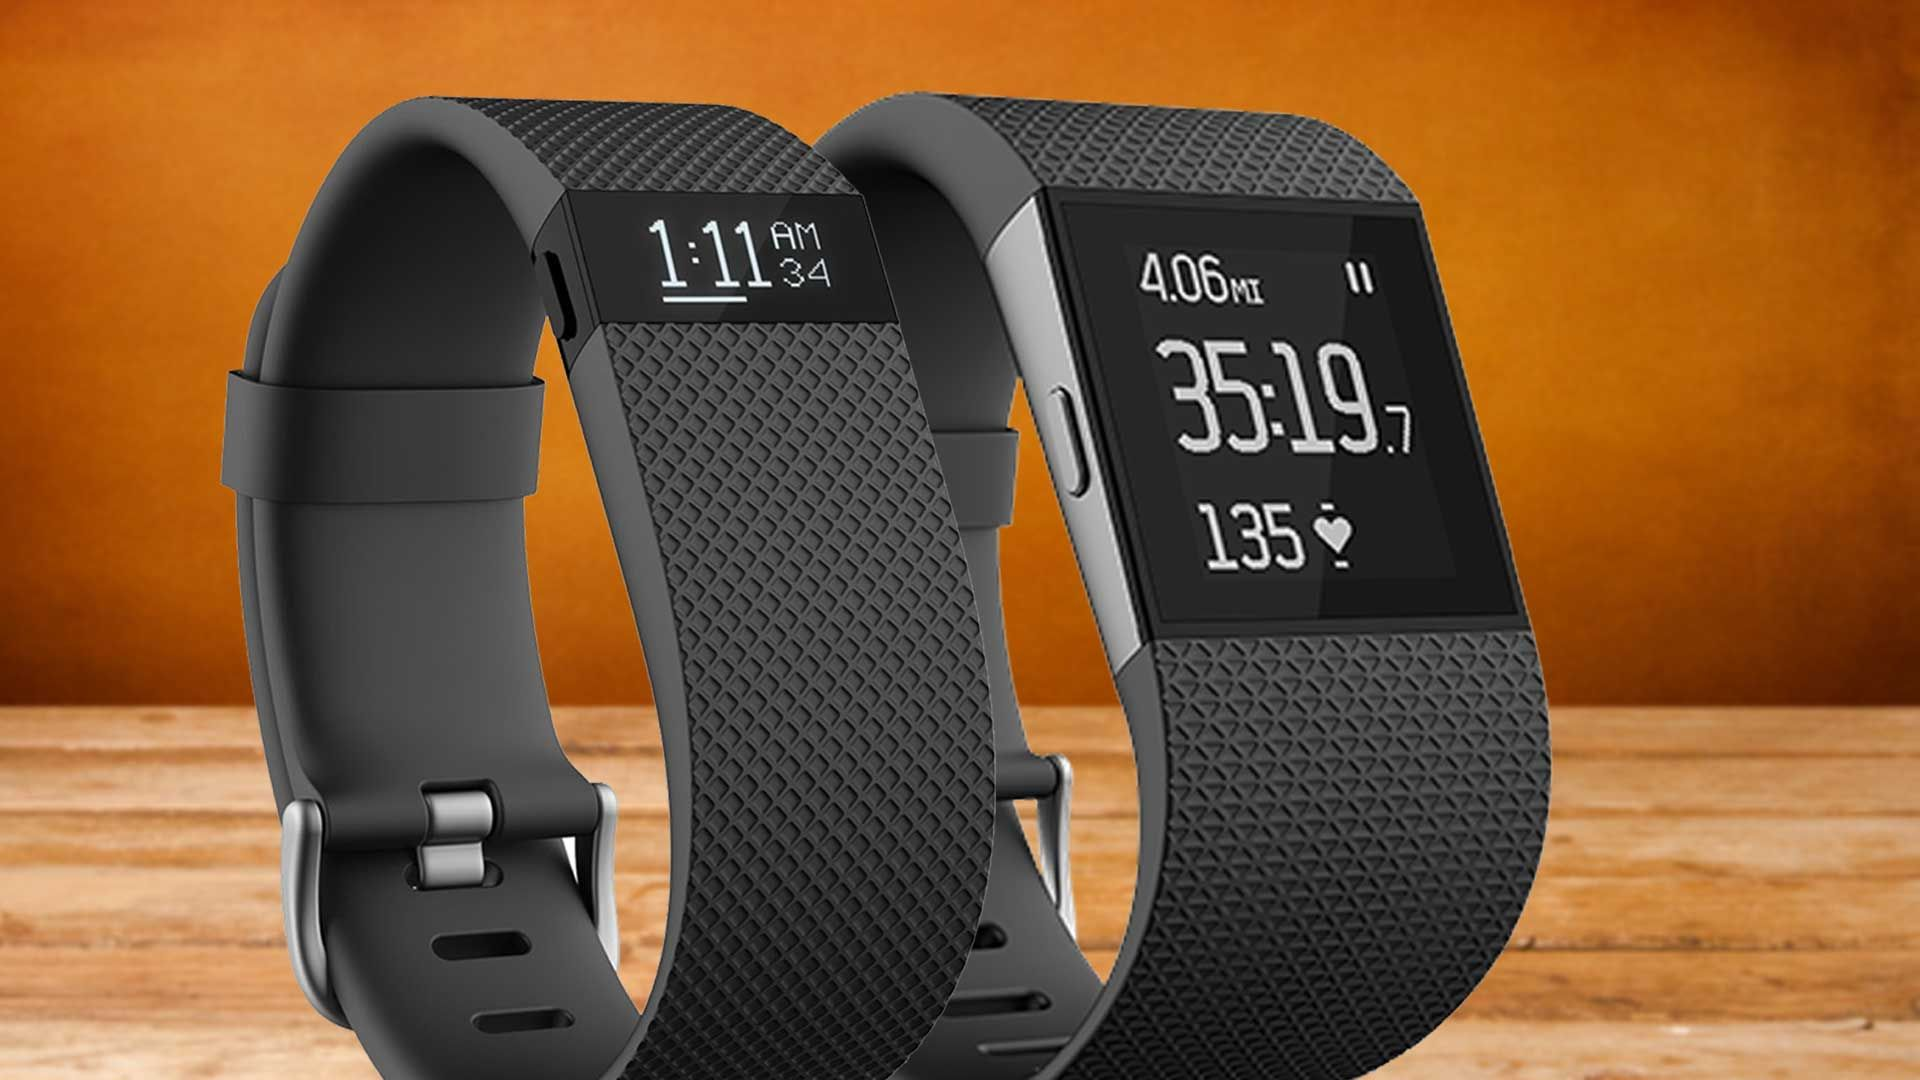 Fitbit Charge Hr Vs Surge Review And Tutorial Pcclassesonline Fitbit Fitbit Charge Fitbit Charge Hr